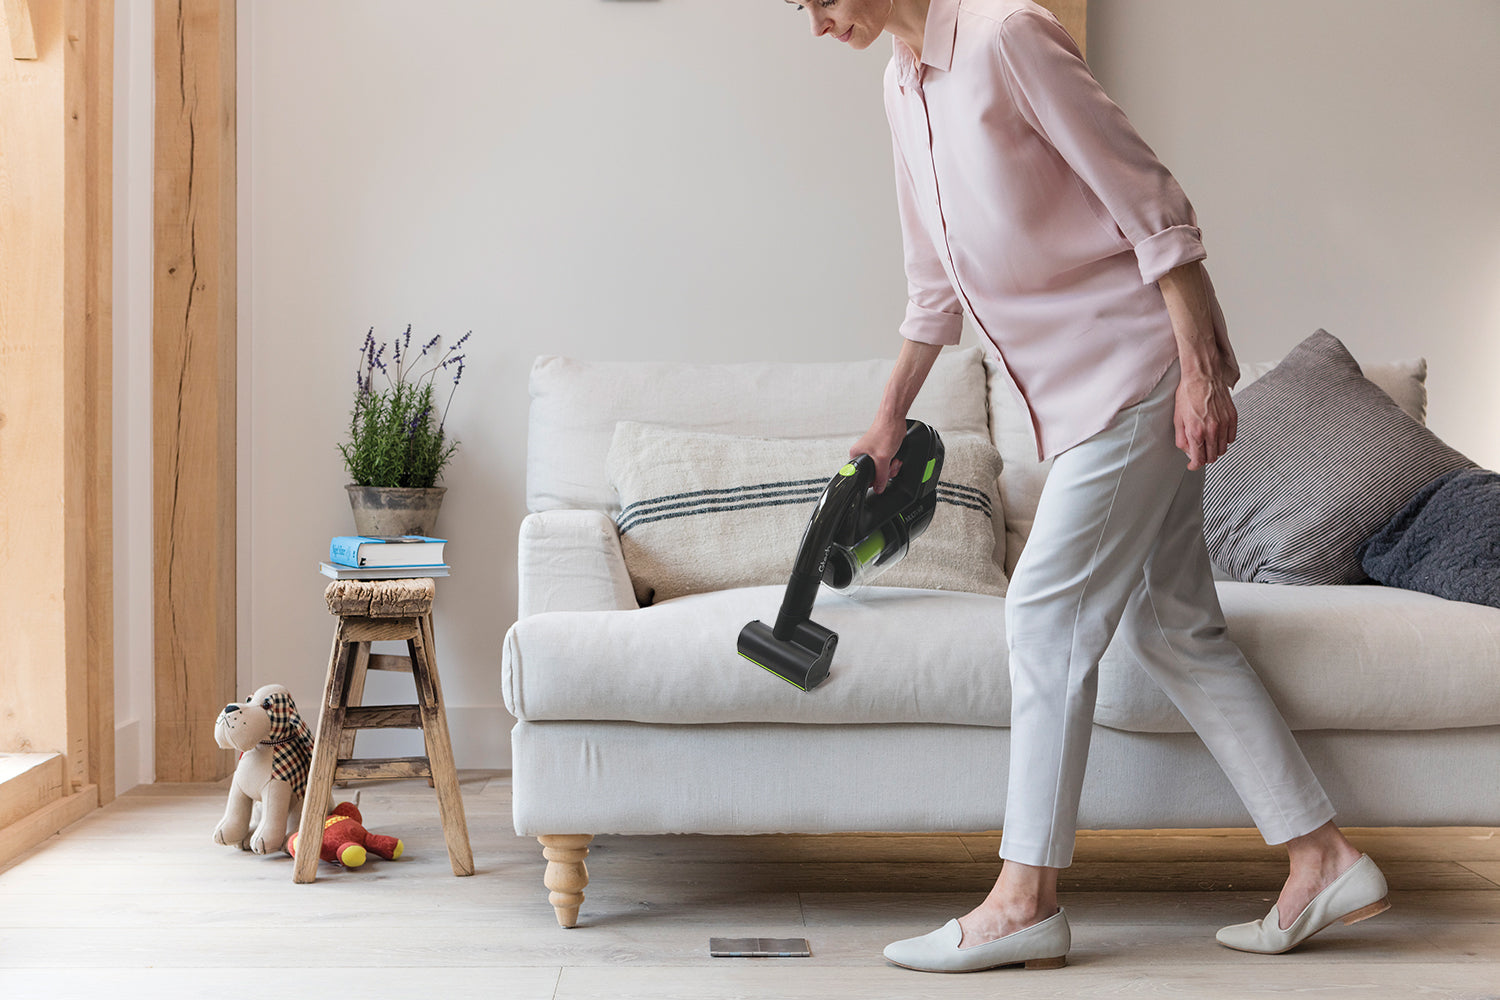 How vacuuming can teach you mindfulness.